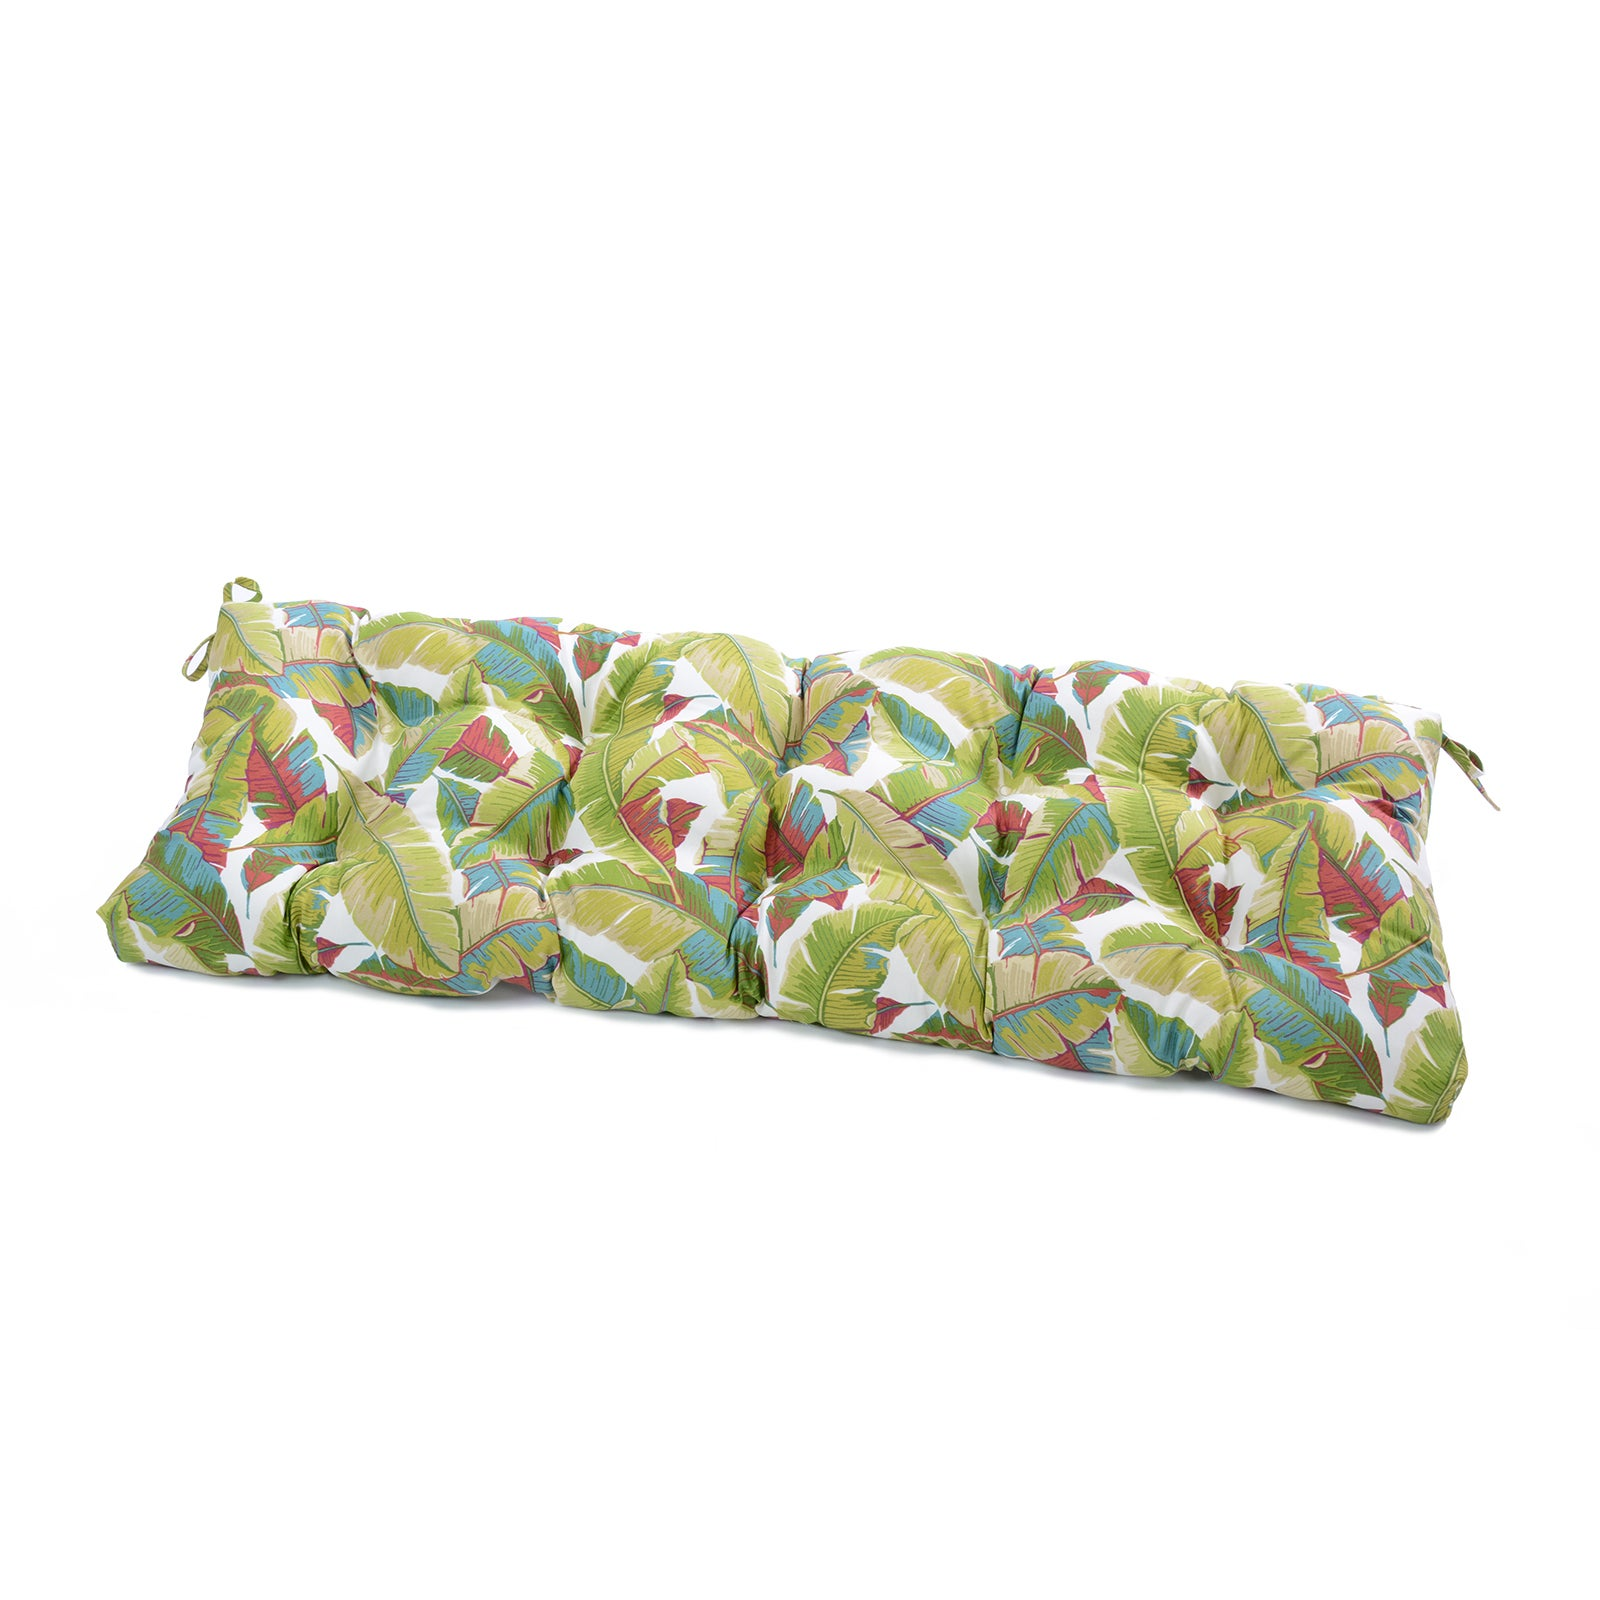 Outdoor Palm Leaves Bench Cushion